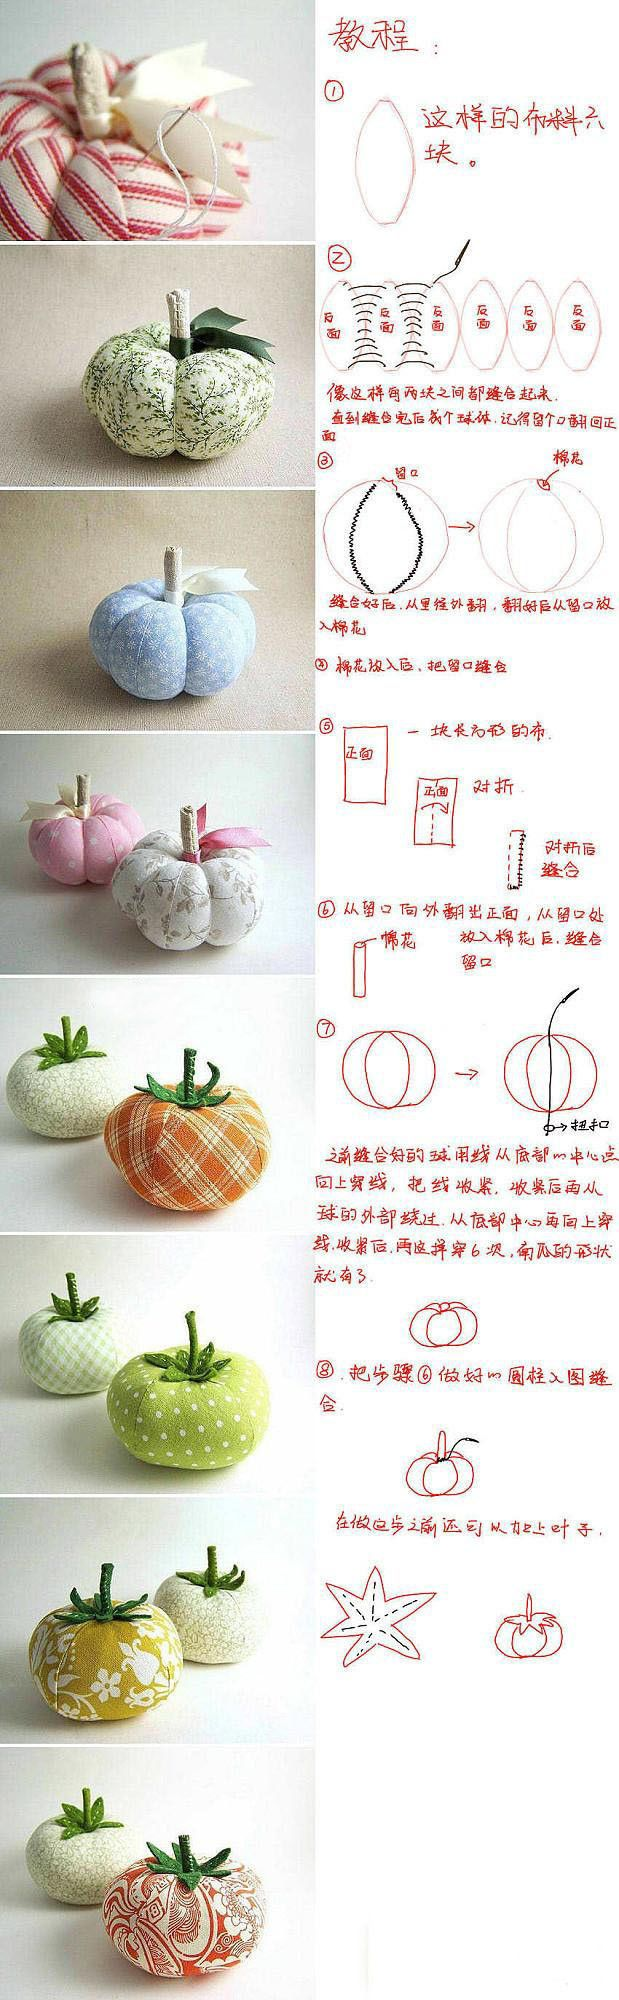 Can be Fabric Pumpkin, Apple or Tomato - sweet ideas for pincushions or make just for fun!